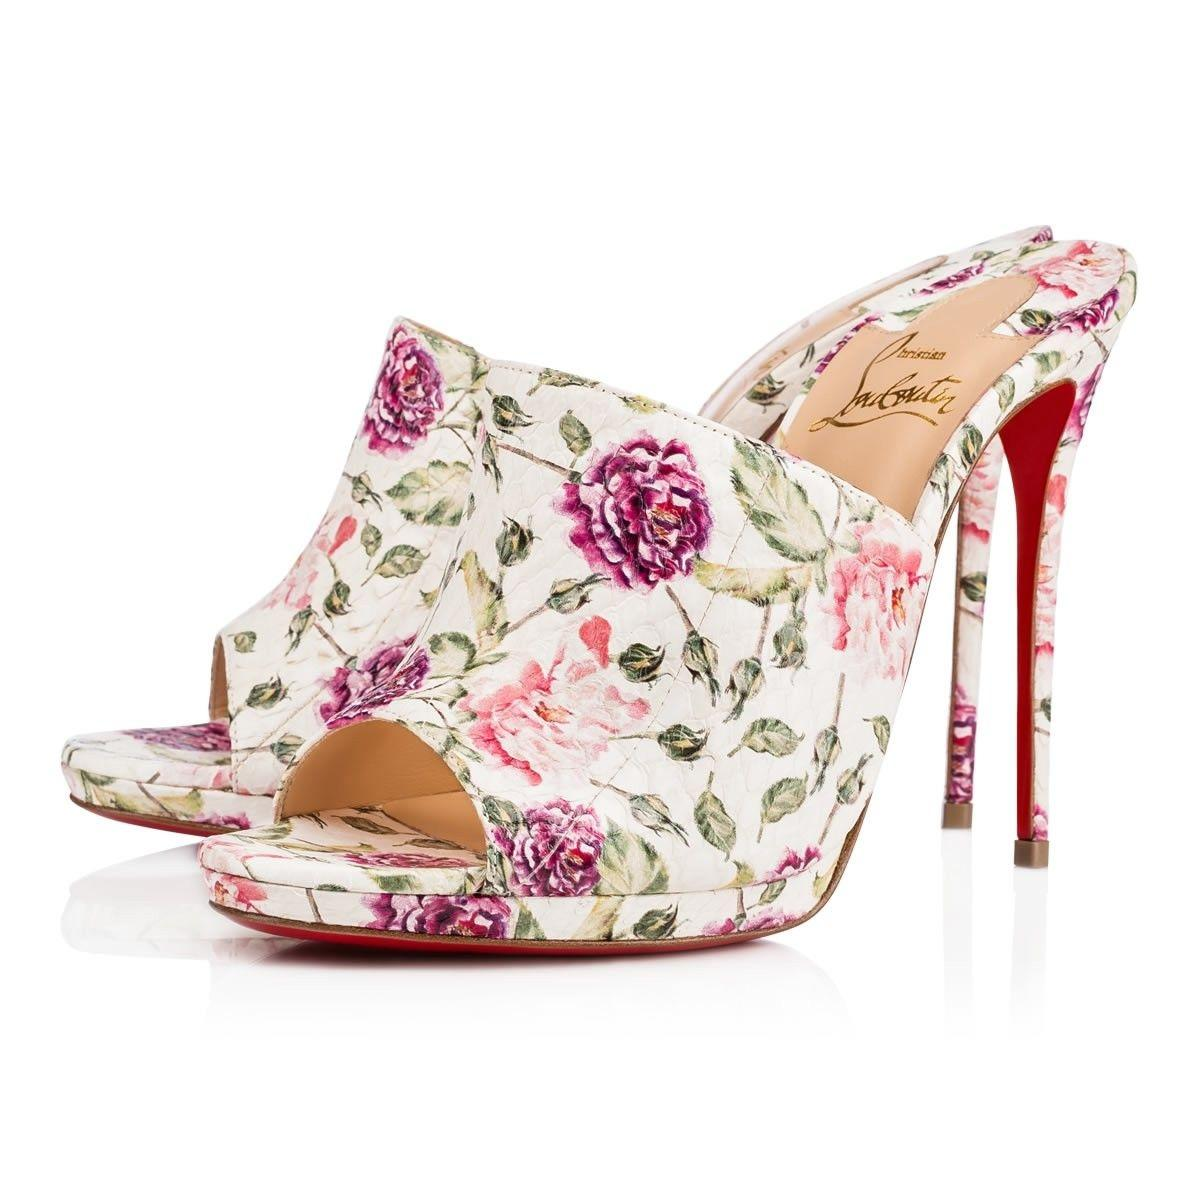 16a8ae051d7b Christian Louboutin White Pigamule 120 Pink Floral Snakeskin Backless Mule  Mule Mule Sandal Heel Pumps Size EU 36 (Approx. US 6) Regular (M